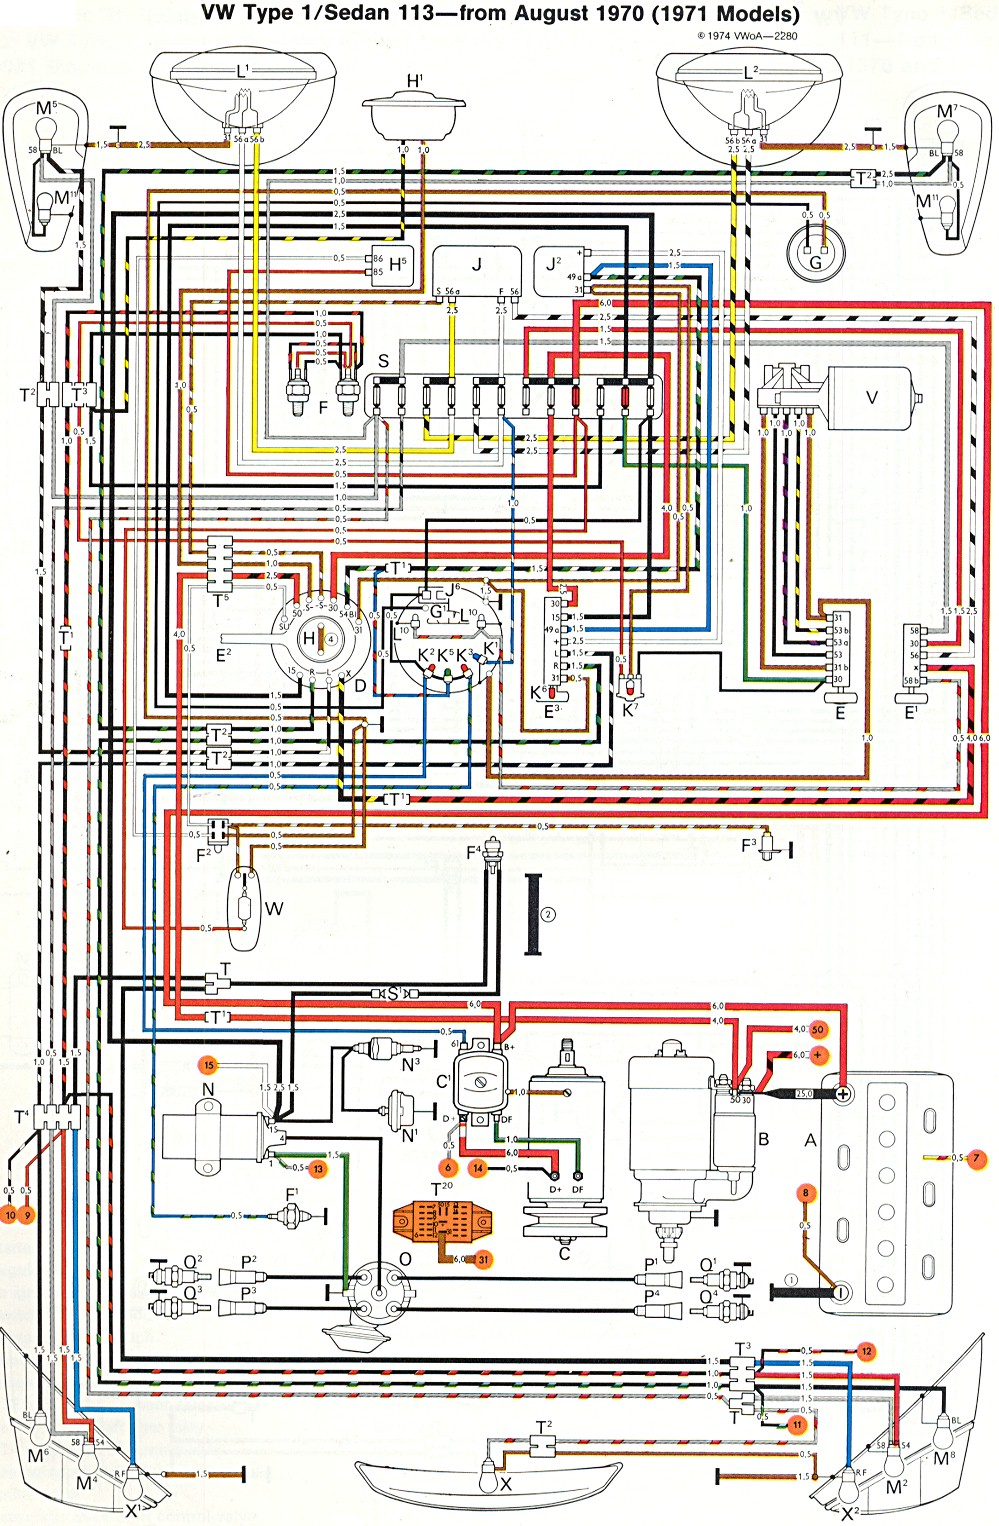 bug_super_71 1971 super beetle wiring diagram thegoldenbug com 1970 vw bug wiring diagram at alyssarenee.co